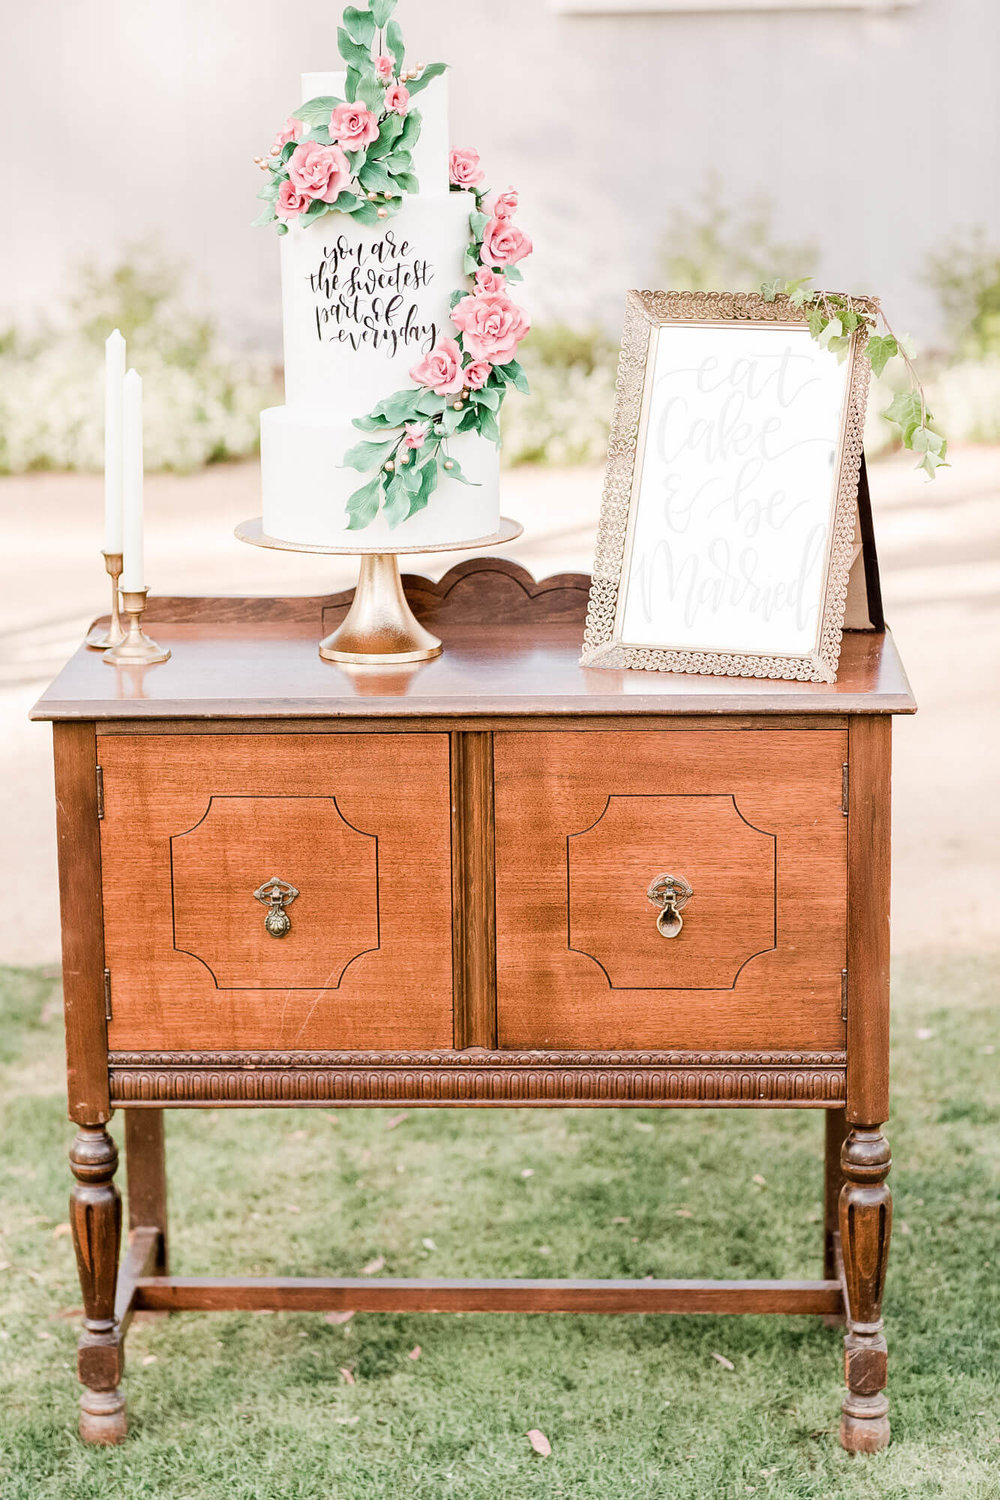 Arrow Mini-Buffet 1 - Provenance Vintage Rentals Los Angeles Cake Table Guest Book Table Favor Table Furniture Rental Prop Rental Los Angeles